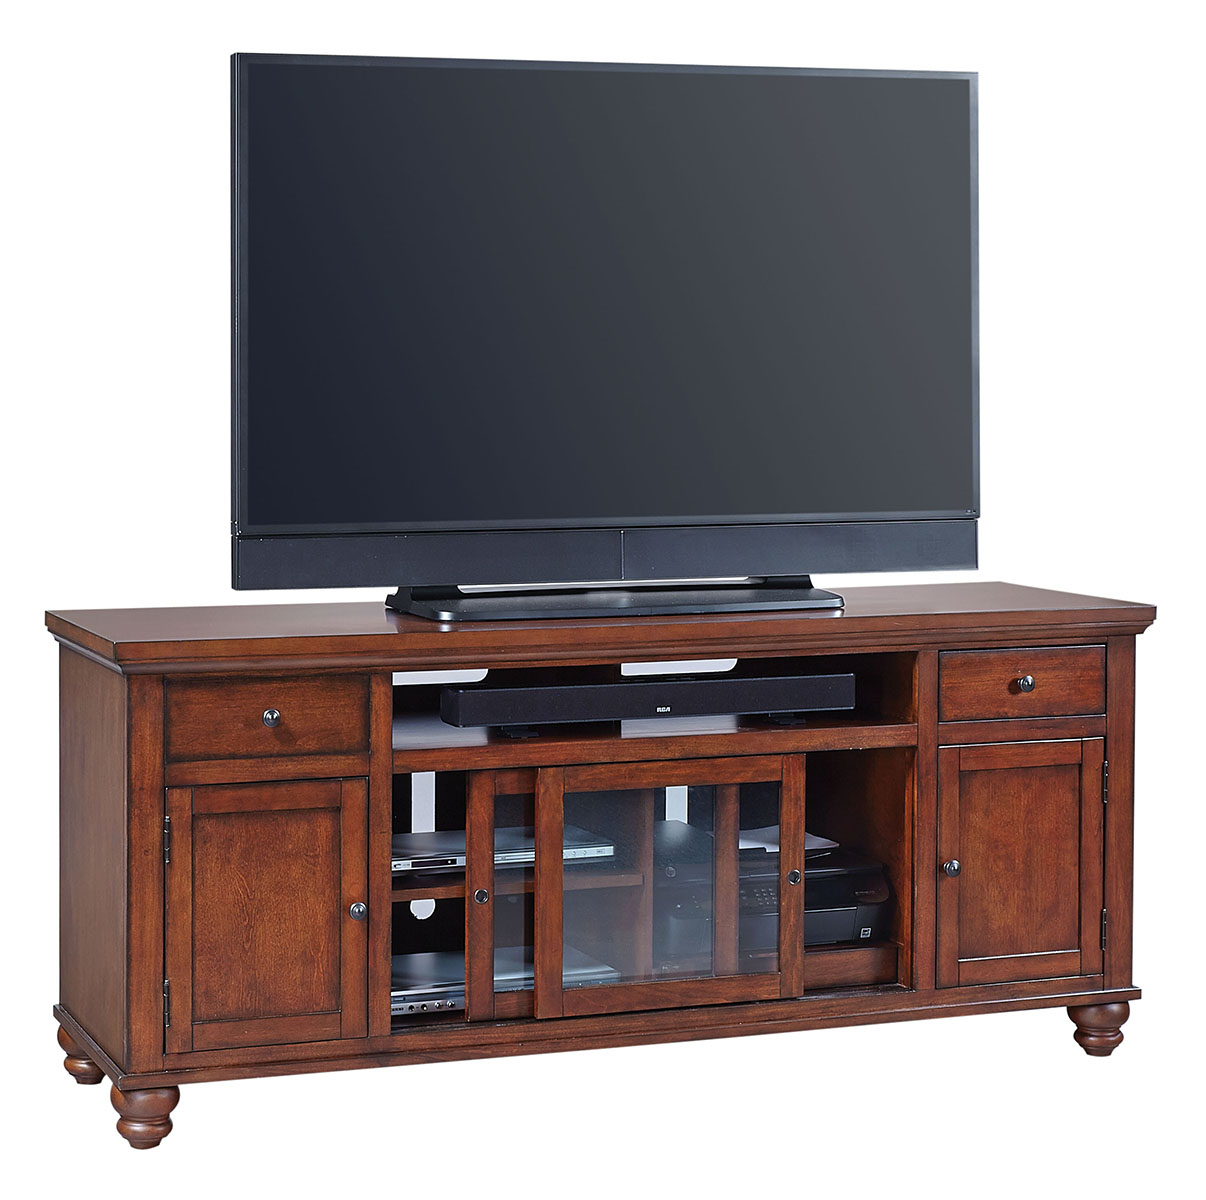 Aspenhome Cambridge 75 Console In Brown Cherry ICB 272 BCH